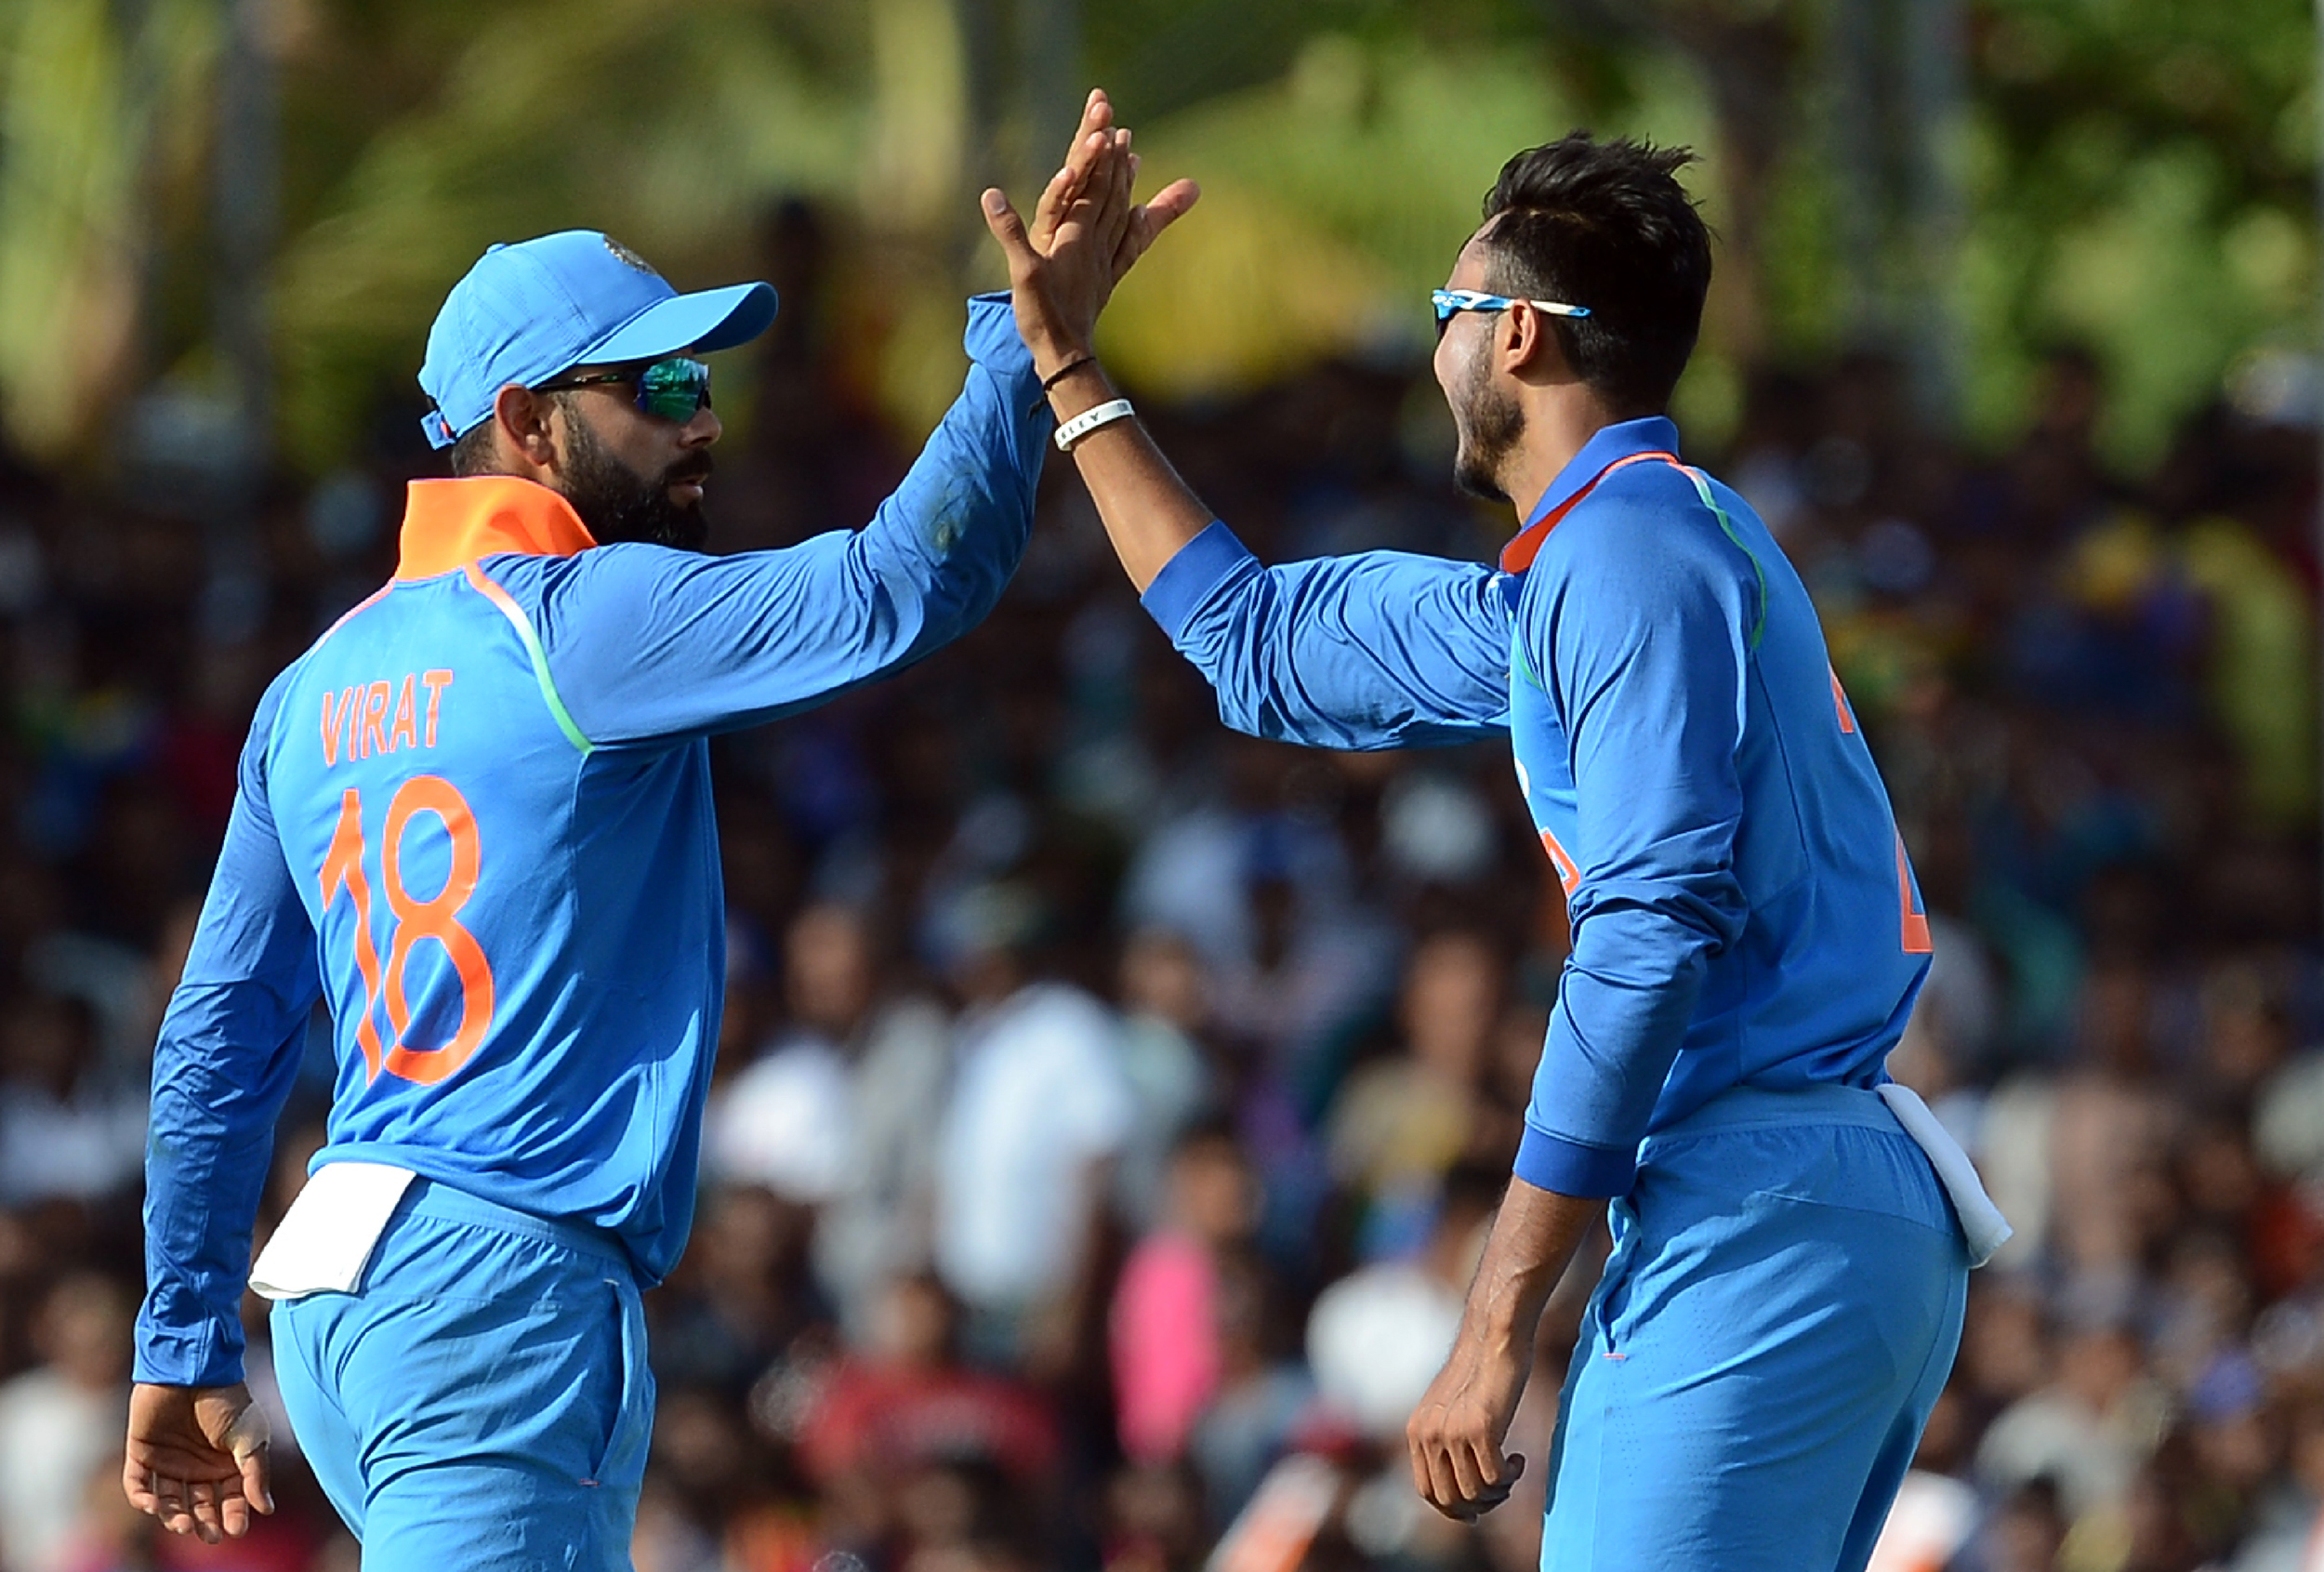 Axar Patel does a holding job but his style of bowling seems interchangeable with Ravindra Jadeja (Image credit: Lakruwan Wanniarachchi/AFP)